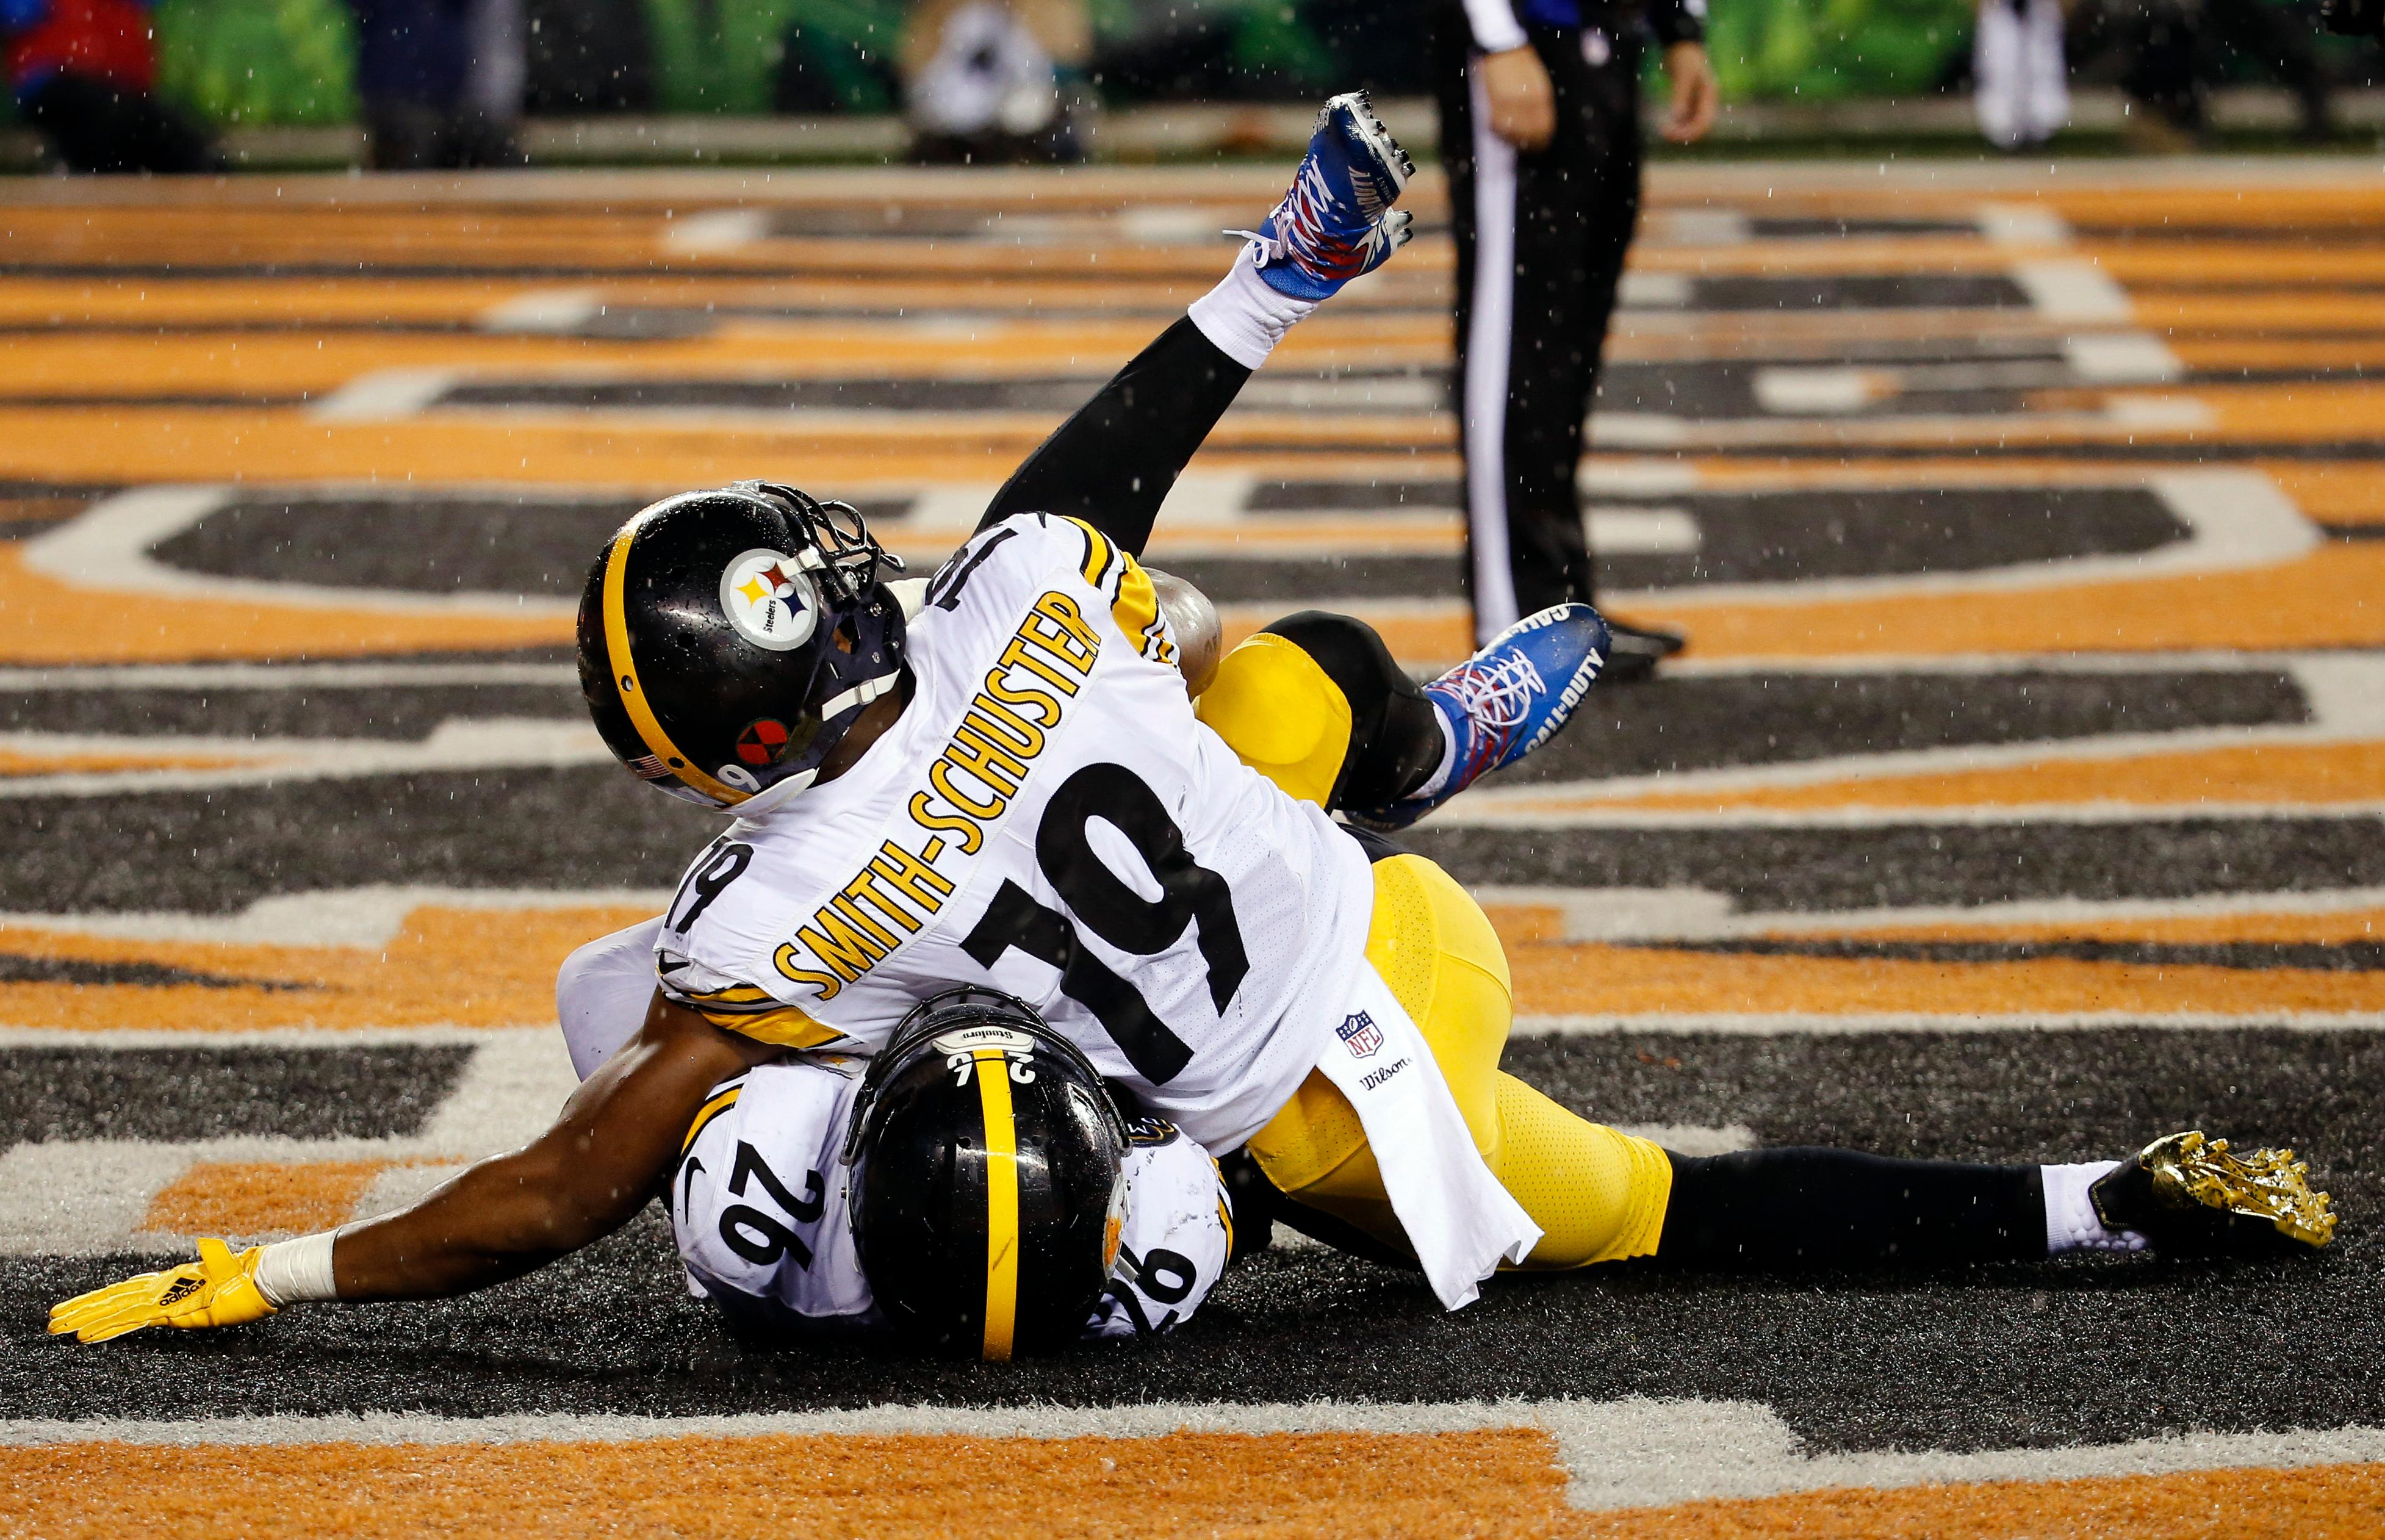 Pittsburgh Steelers running back Le'Veon Bell (26) celebrates his touchdown with wide receiver JuJu Smith-Schuster (19) in the second half of an NFL football game against the Cincinnati Bengals, Monday, Dec. 4, 2017, in Cincinnati. (AP Photo/Frank Victores)